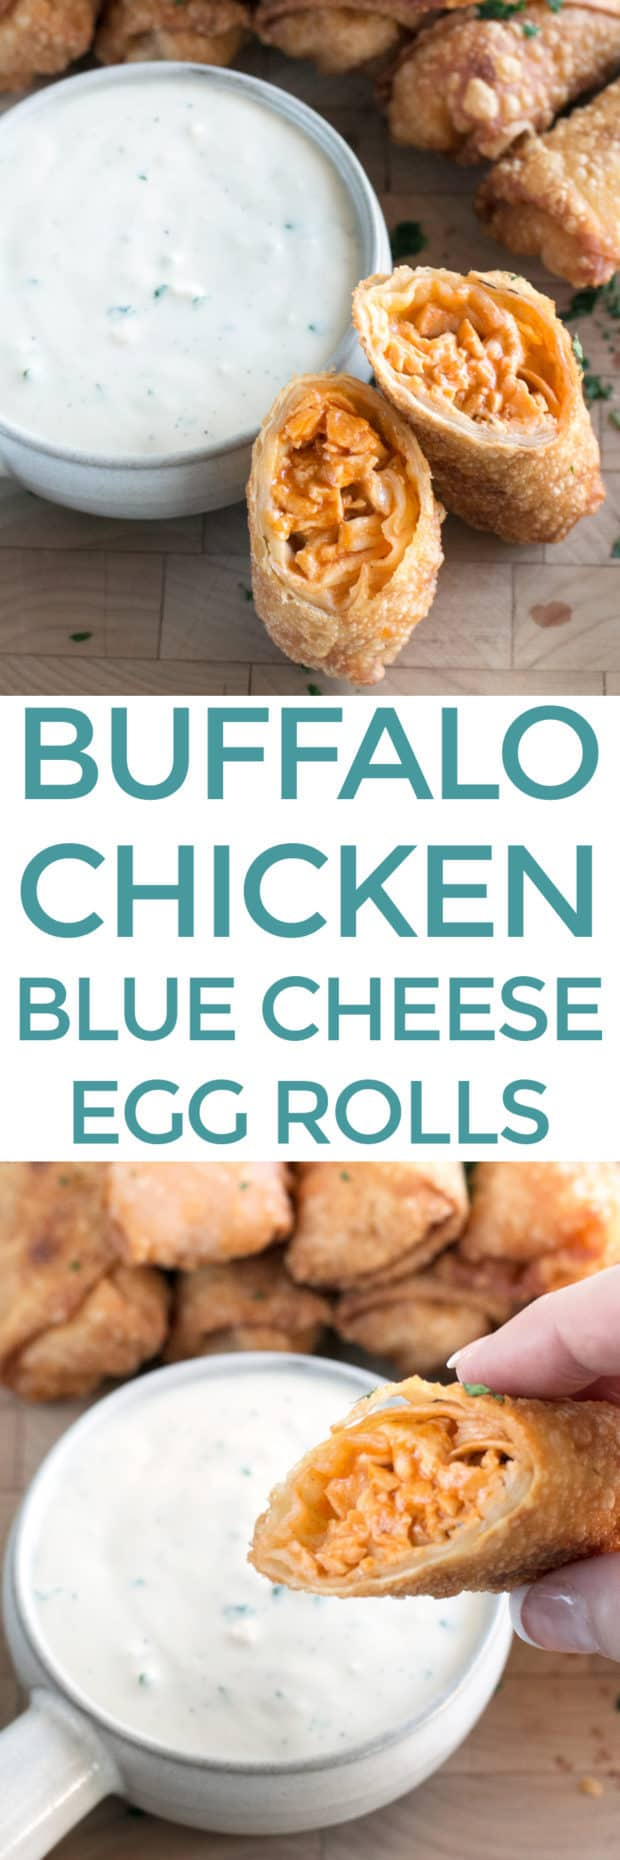 Blue Cheese Buffalo Chicken Egg Rolls | cakenknife.com #buffalochicken #tailgating #appetizer #eggrolls